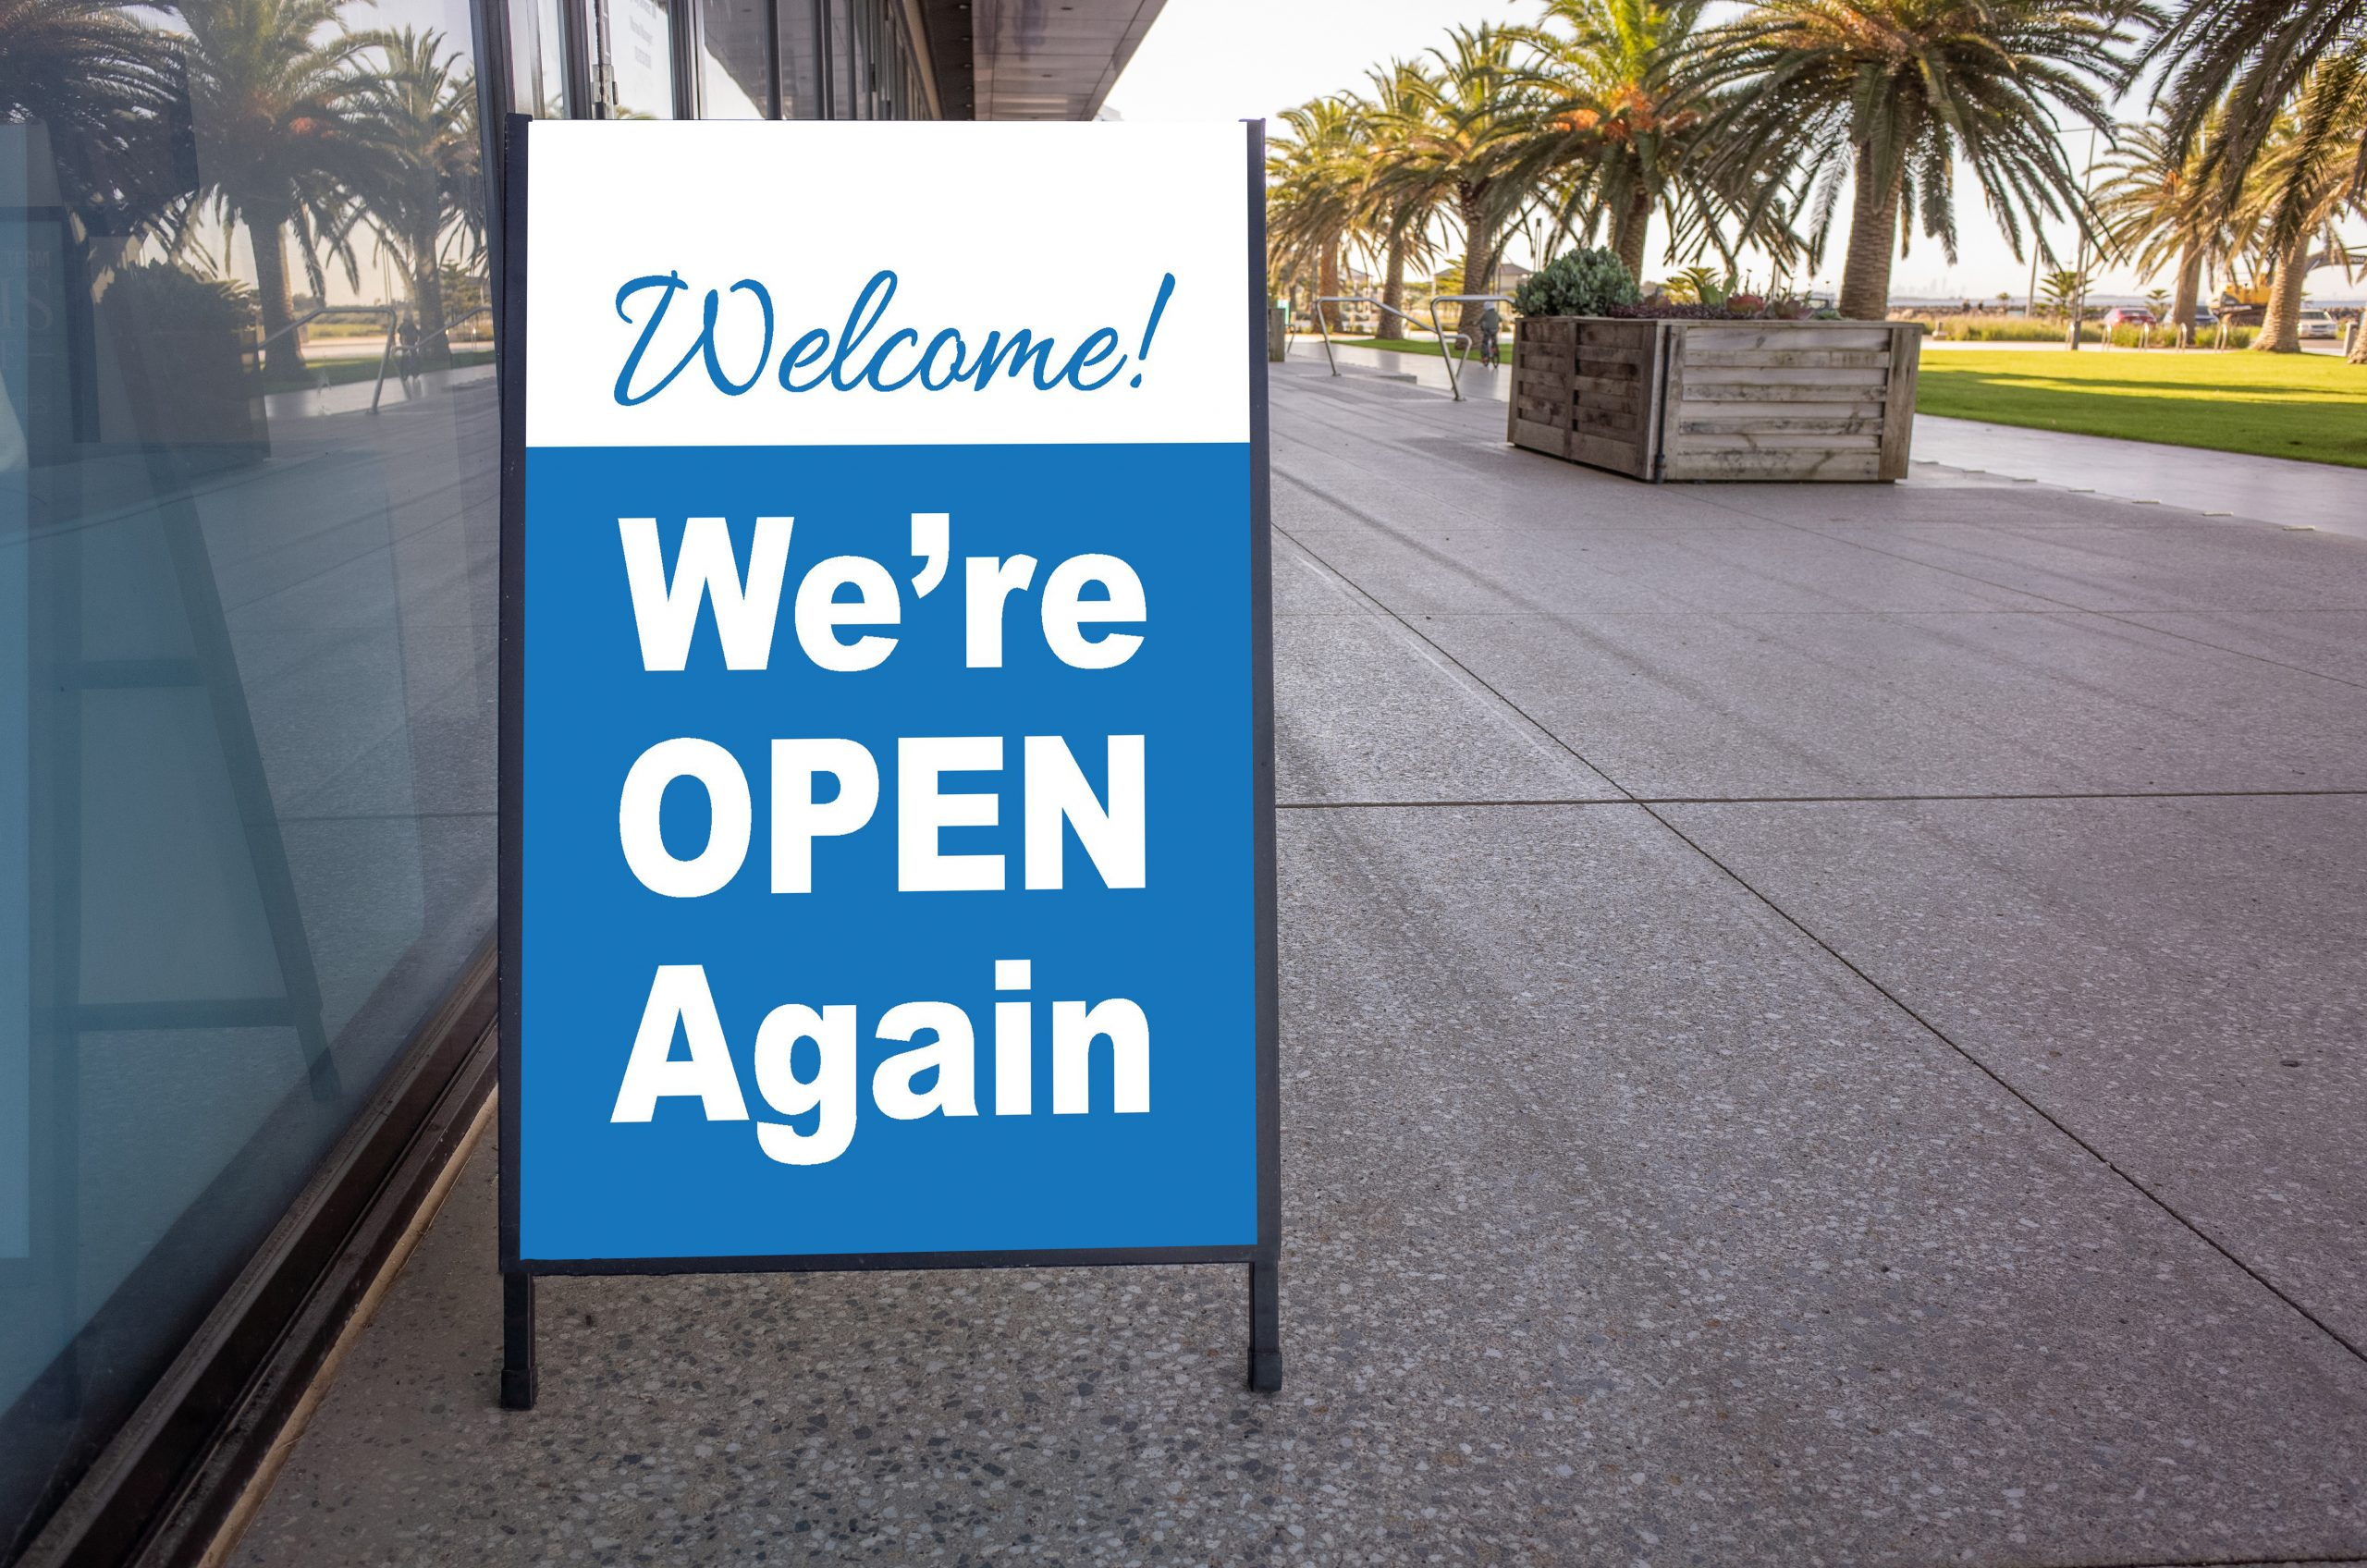 Advertising your Business During Tough Times with Park Press Sign Company in Saugus, MA